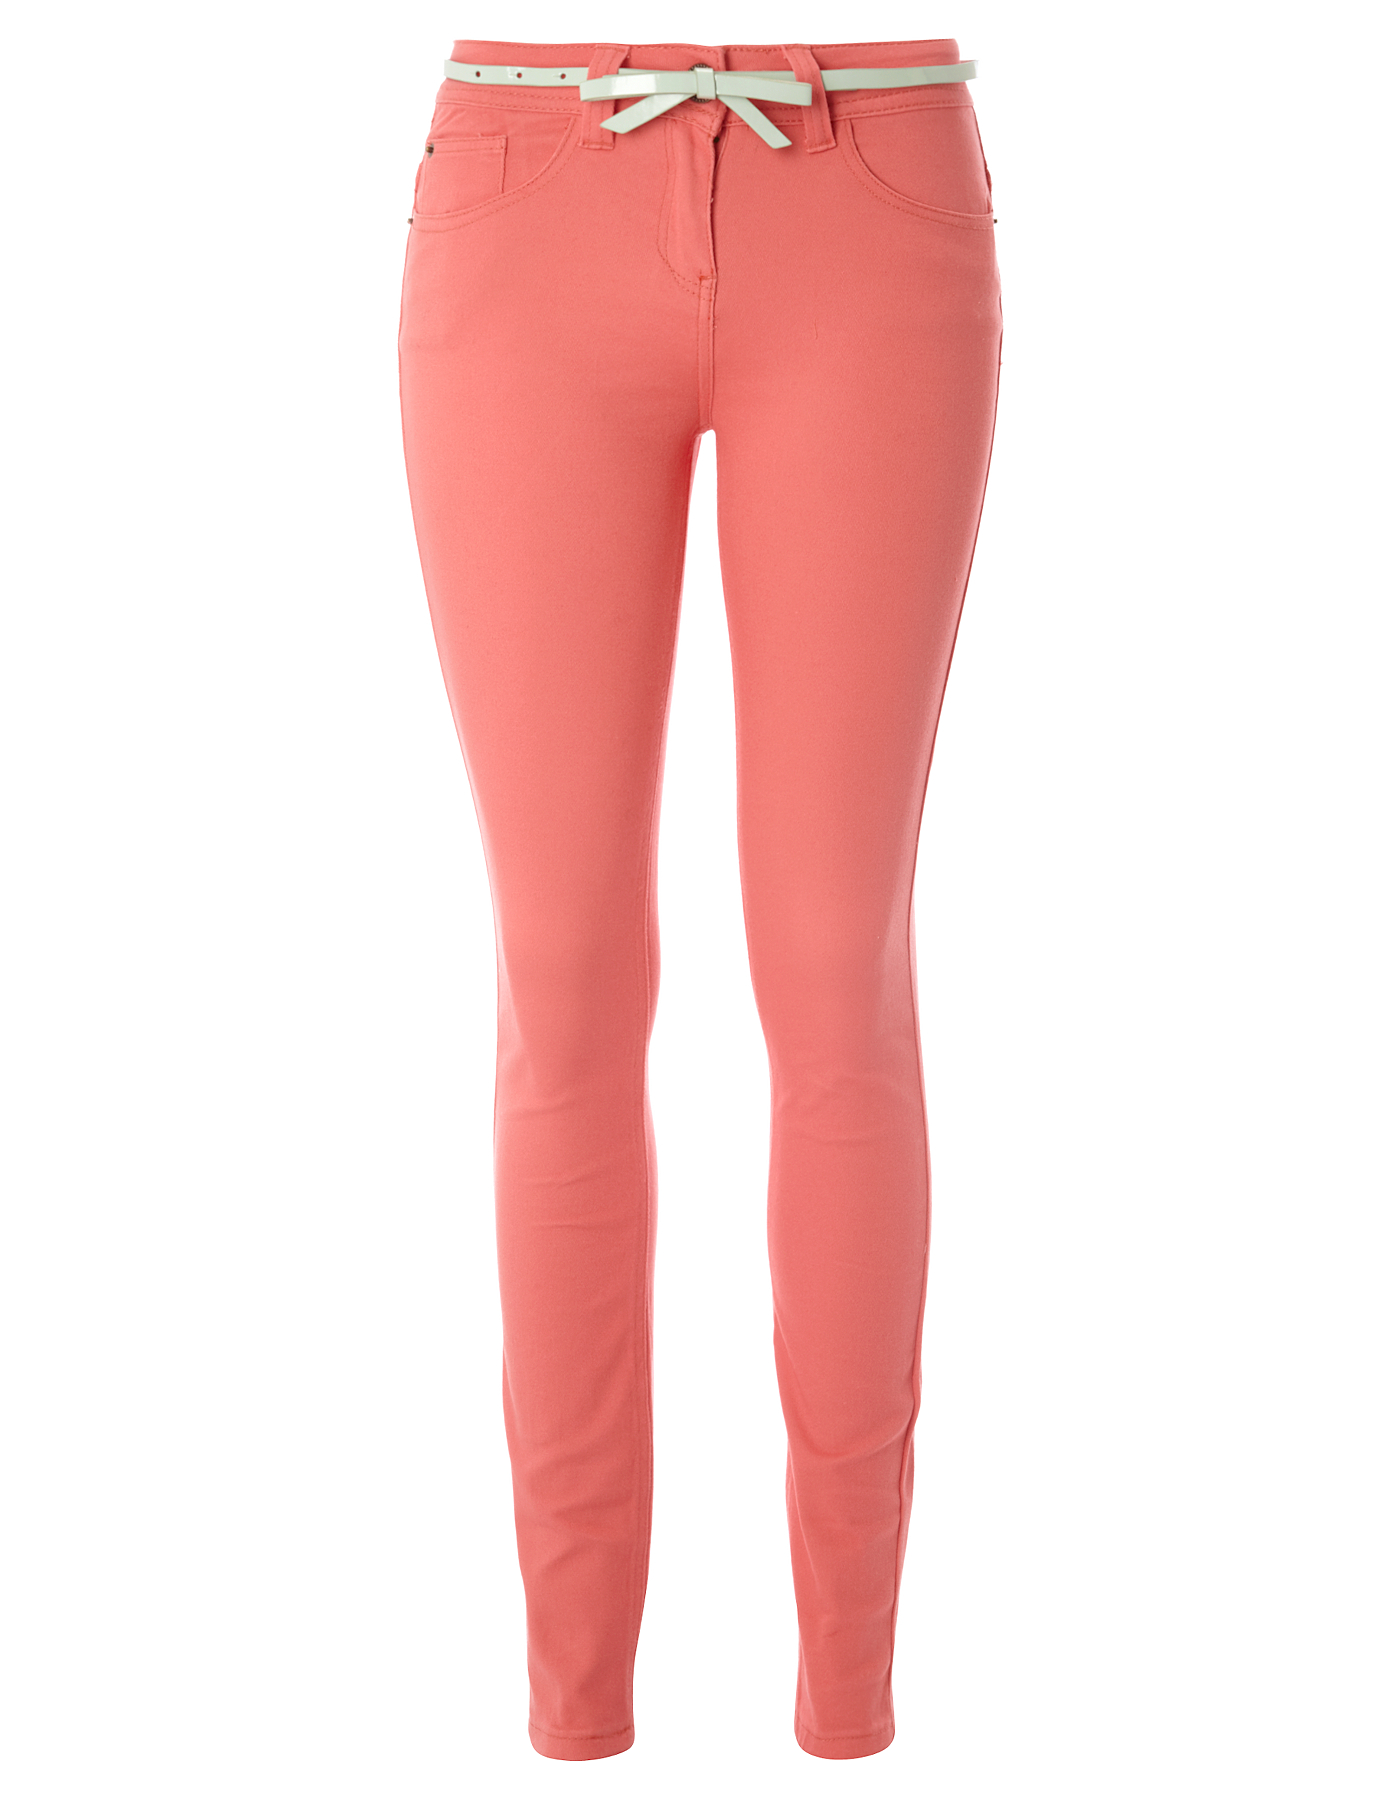 G21 Super Skinny Coloured Jeans - Coral £14.00 George at Asda